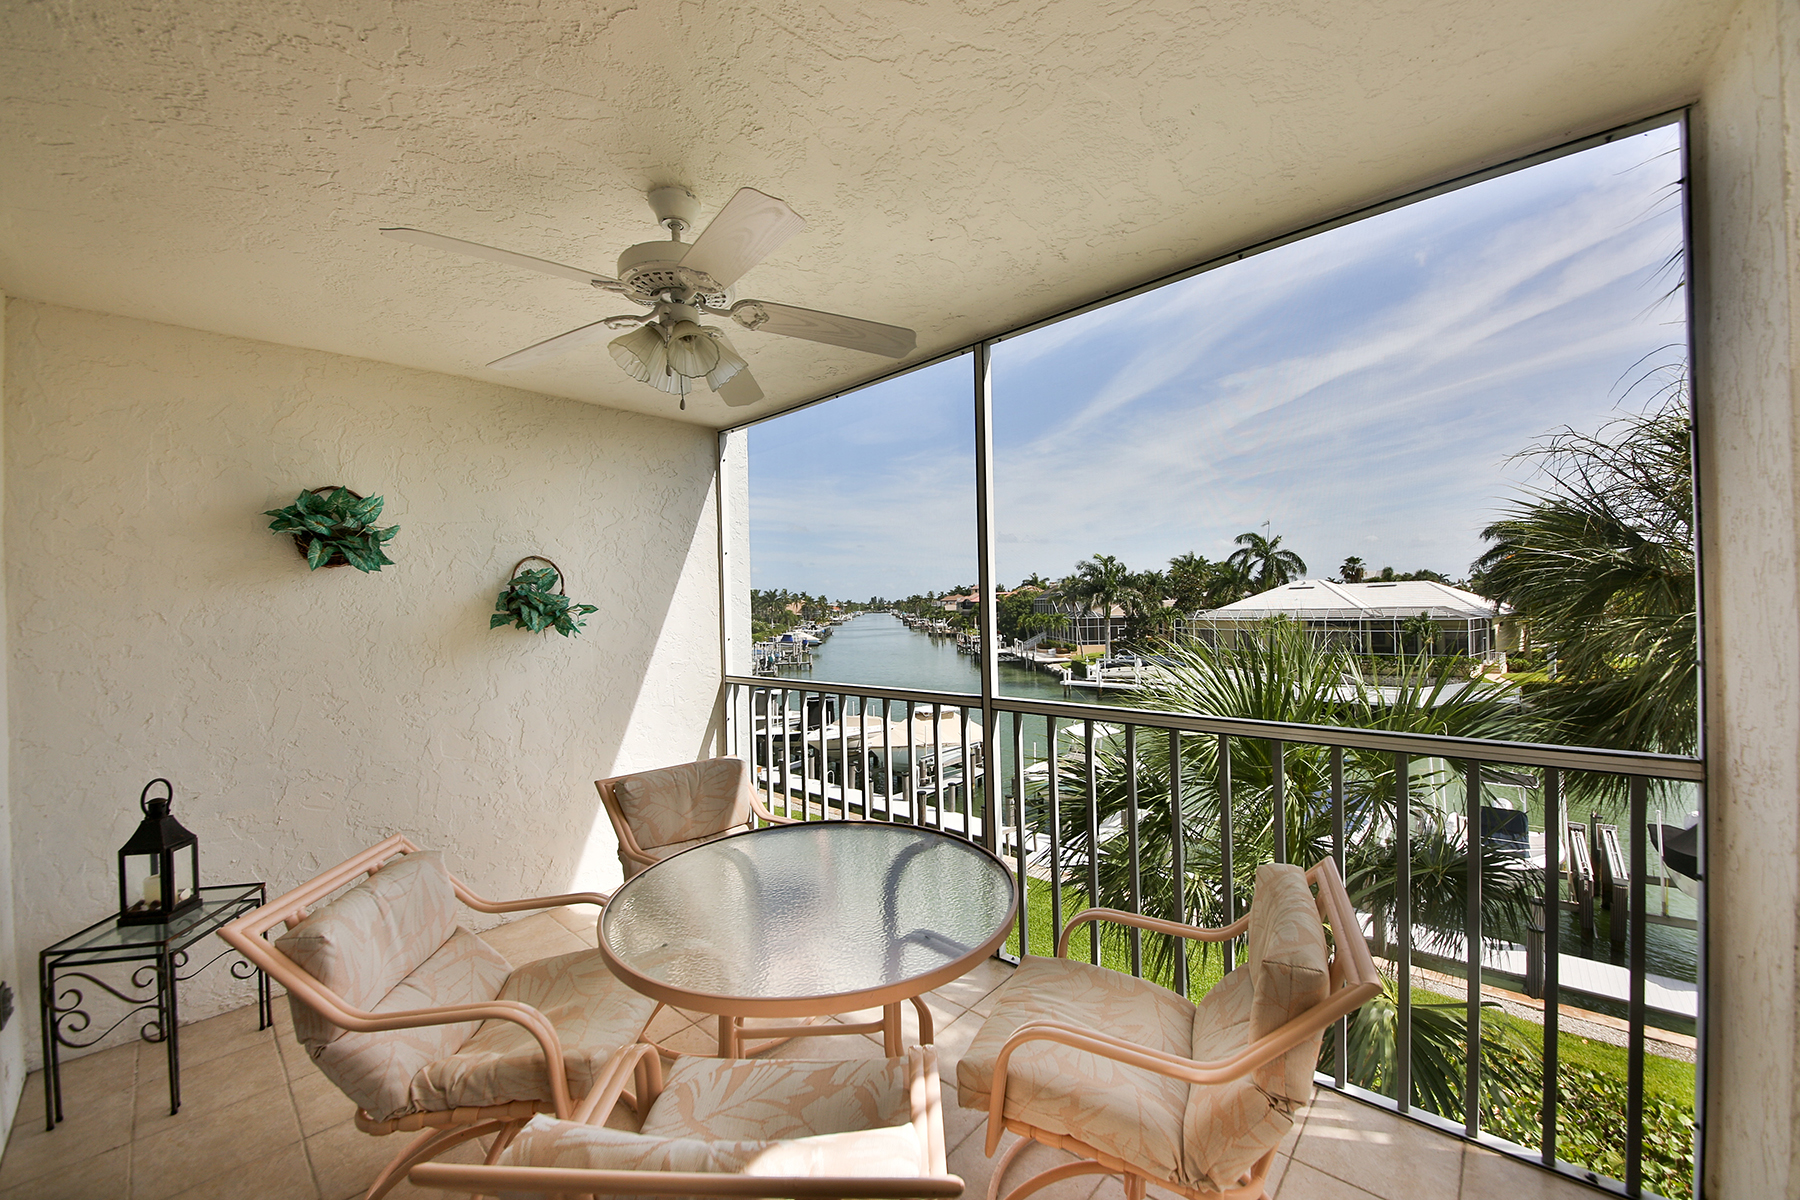 Condominium for Sale at MARCO BEACH - EAGLE CAY 889 Collier Ct 2-305 Marco Island, Florida, 34145 United States